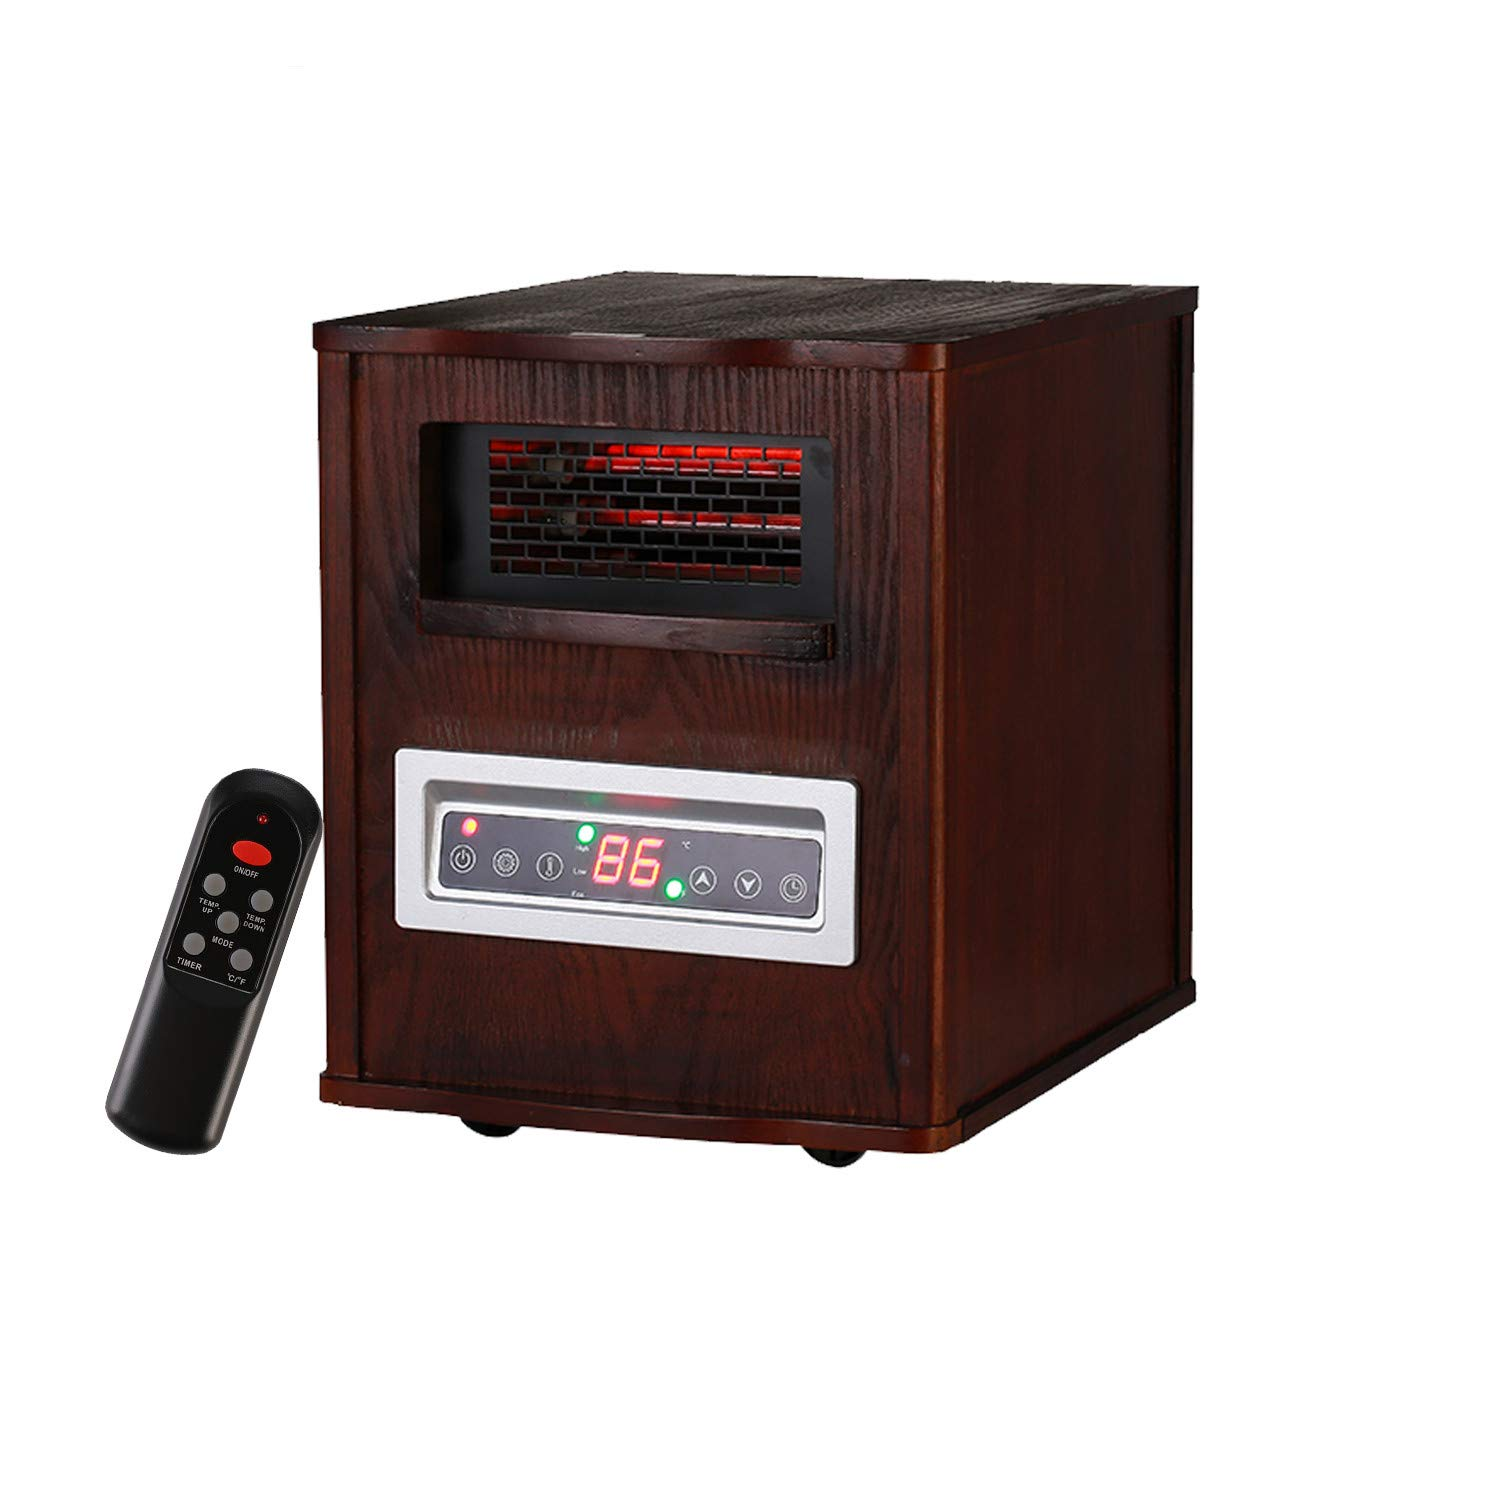 KOOLWOOM Portable Electrci Space Heater Infrared Zone Heating Systems with Thermostat for Office and Home,Tip-Over and overheat Protection Remote Control 12hr Timer Filter 1000W-1500W Dark Walnut